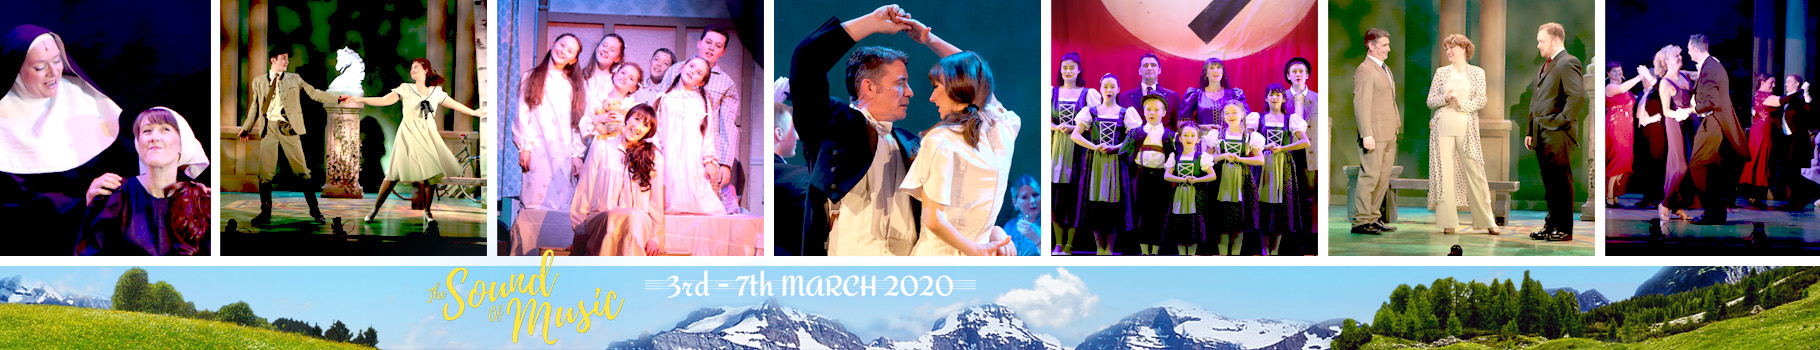 20-03 The Sound Of Music Web PHOTOS